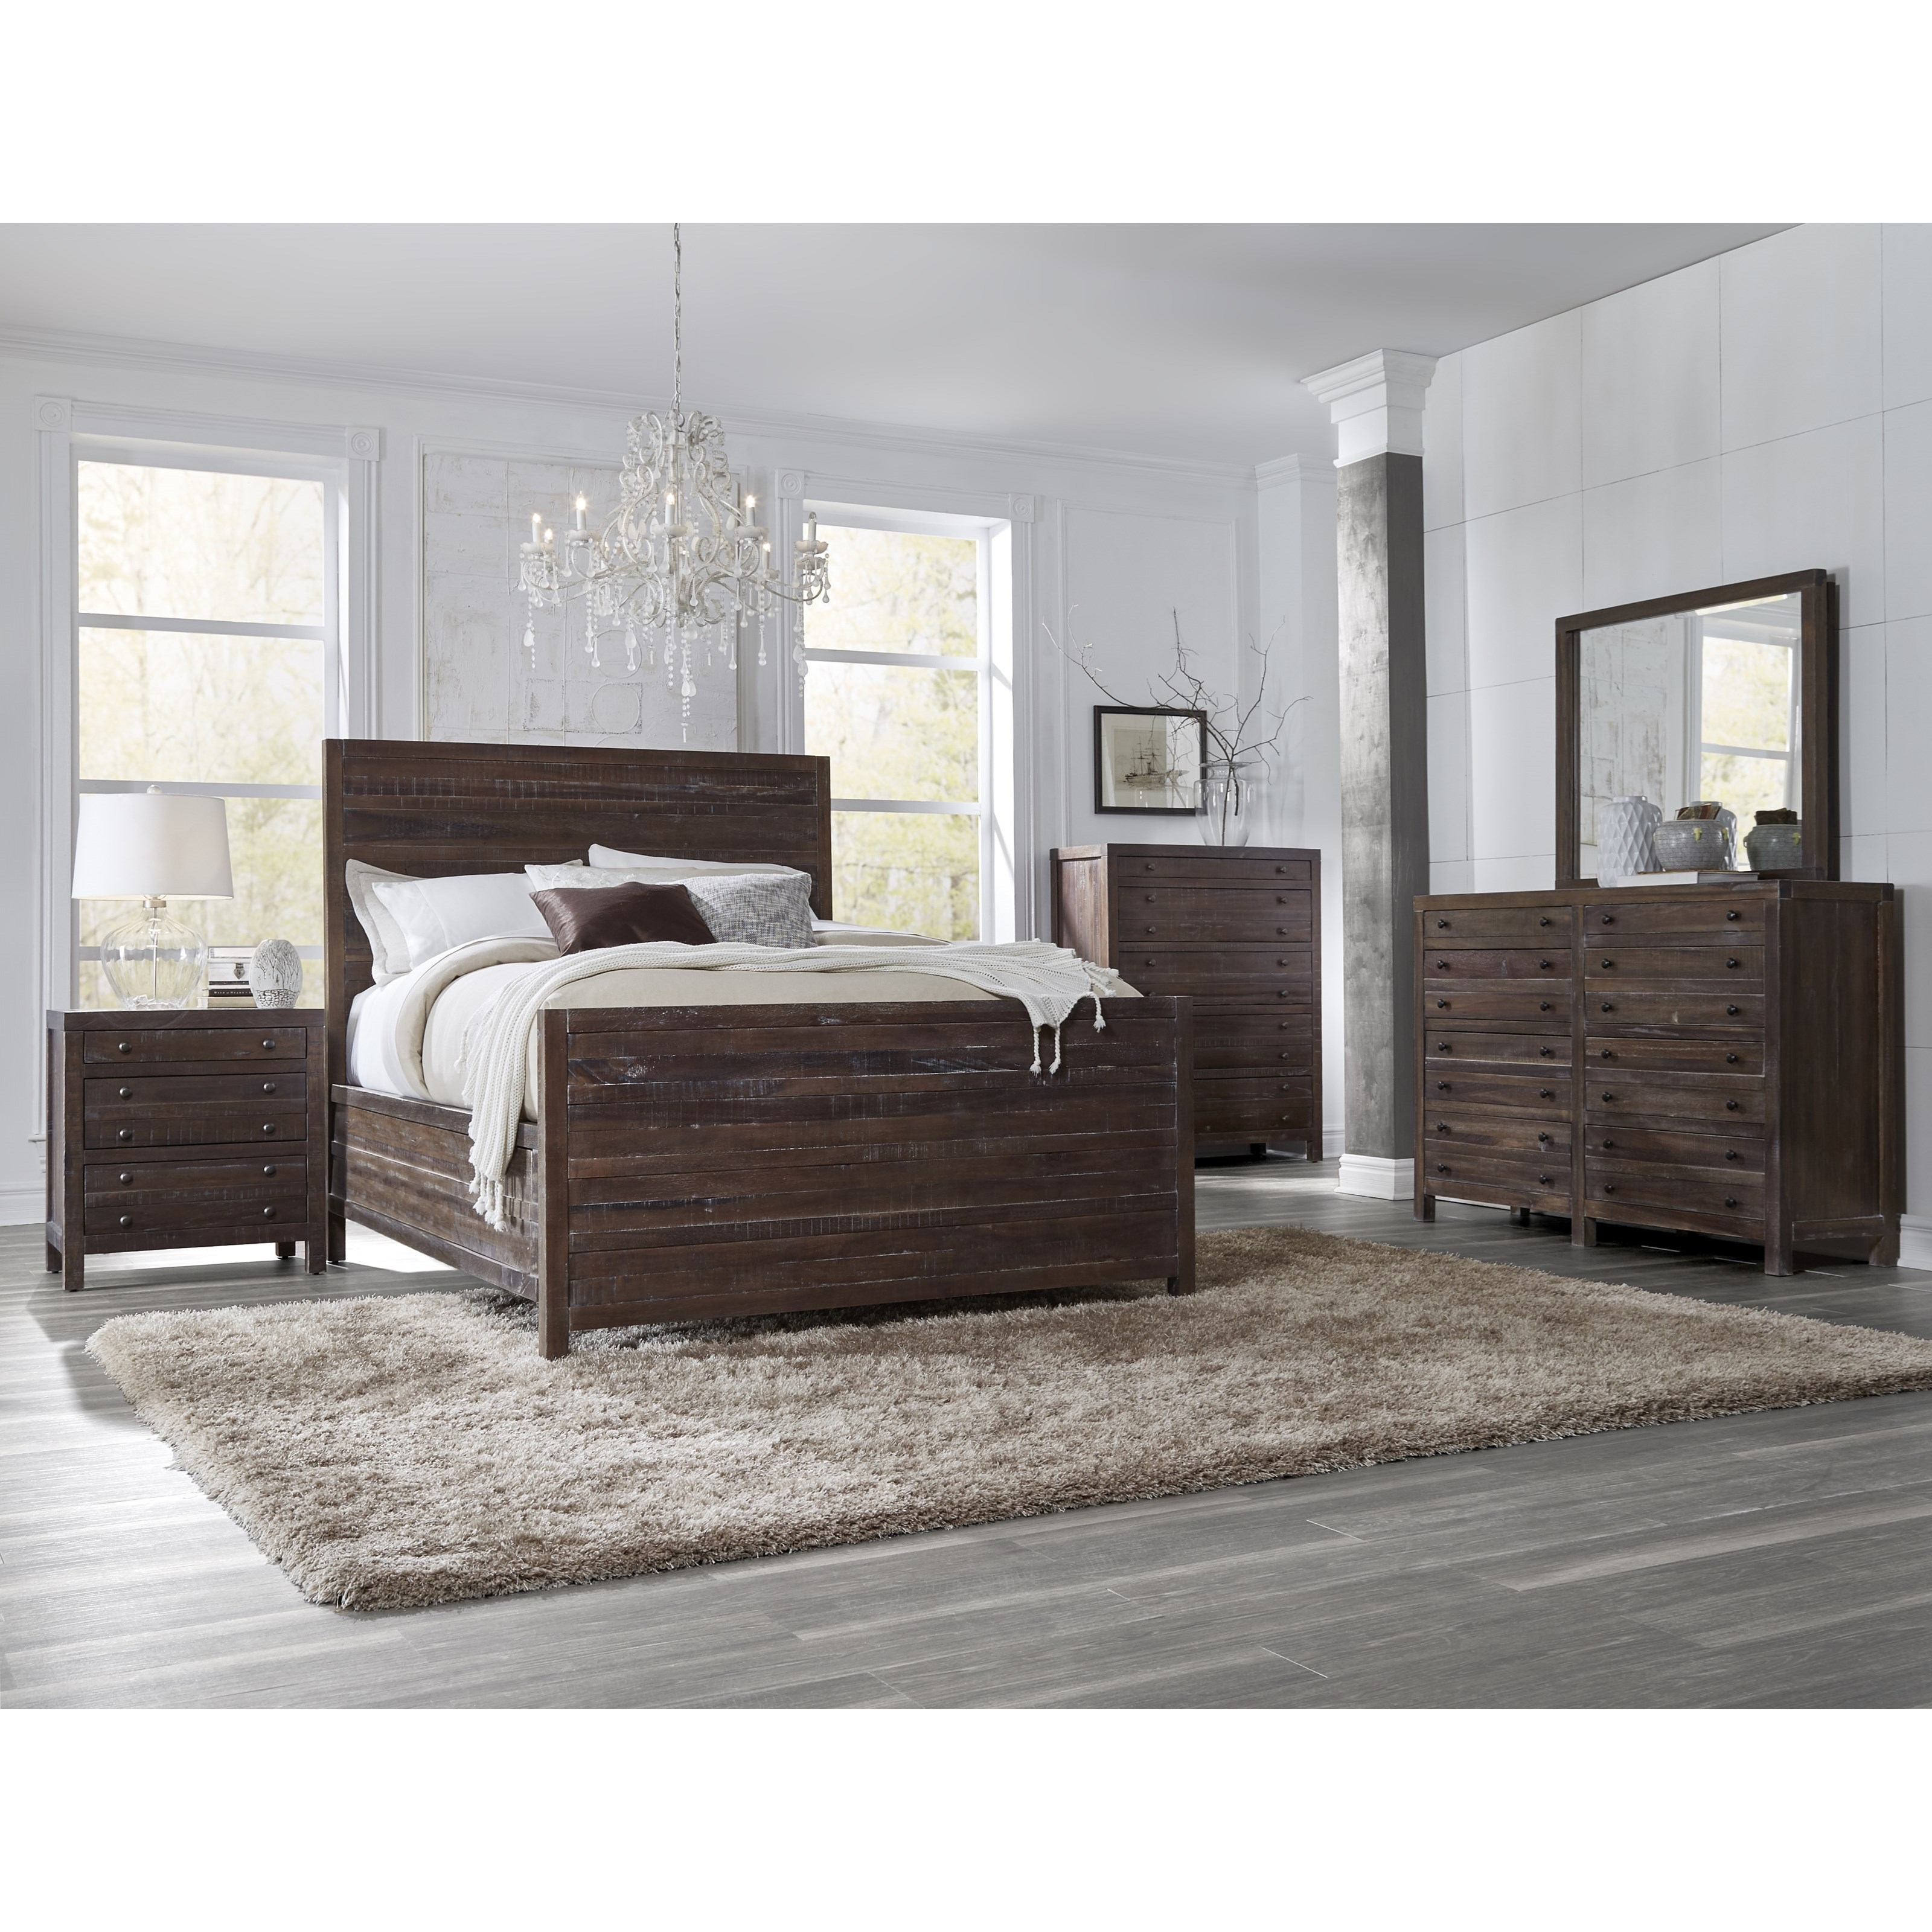 Townsend King Bedroom Group by Modus International at Del Sol Furniture